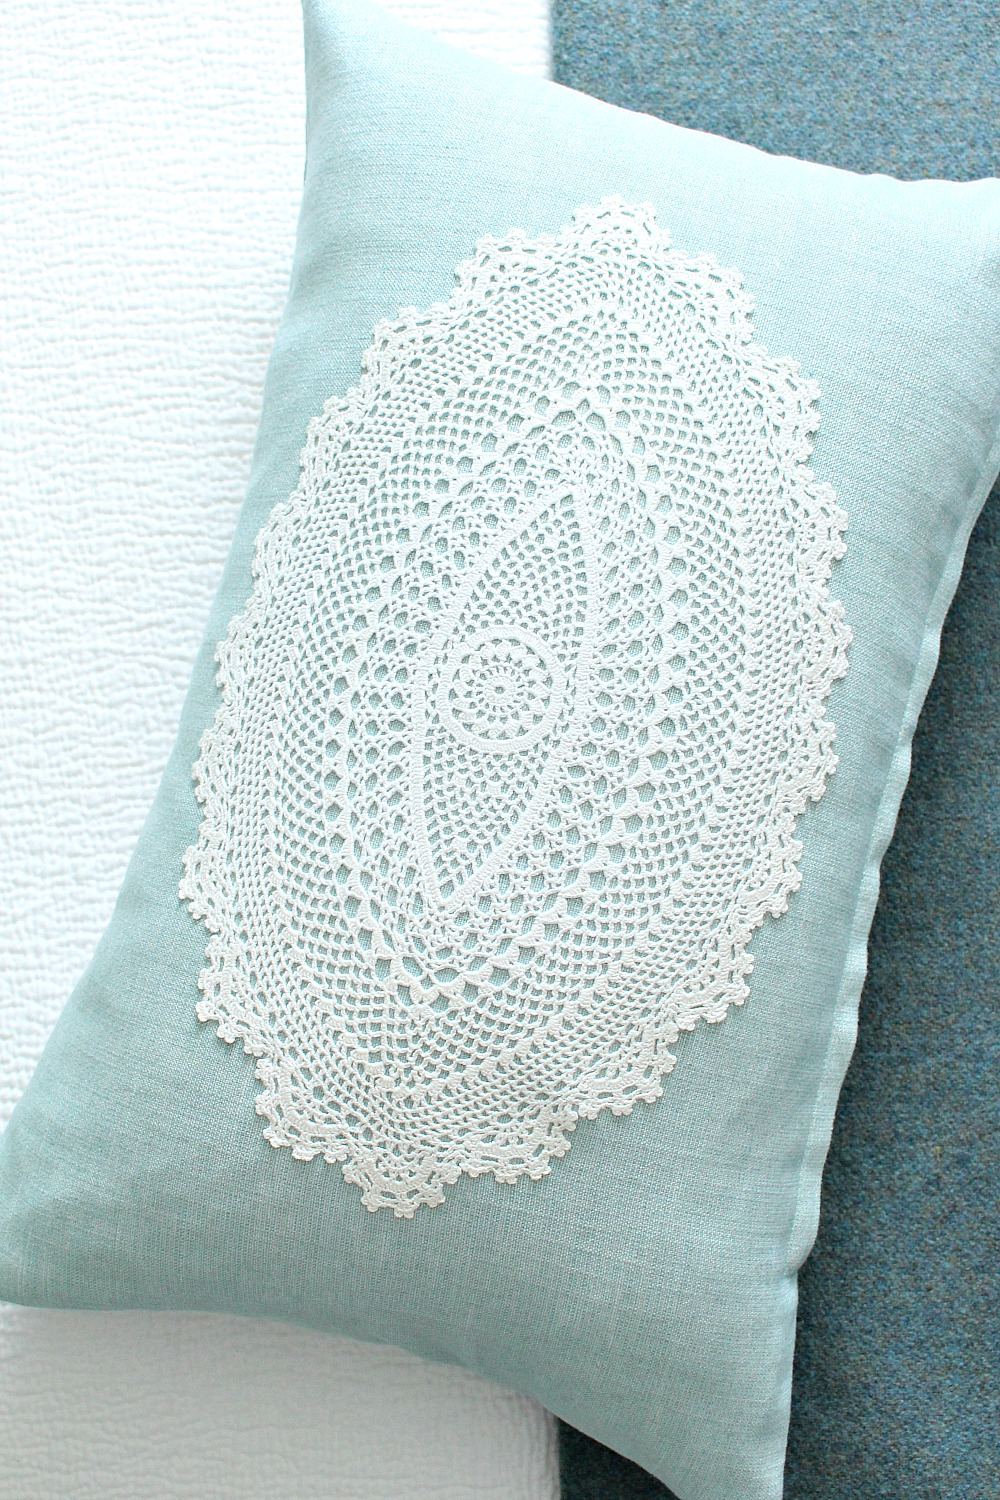 How to Sew a Doily onto Fabric